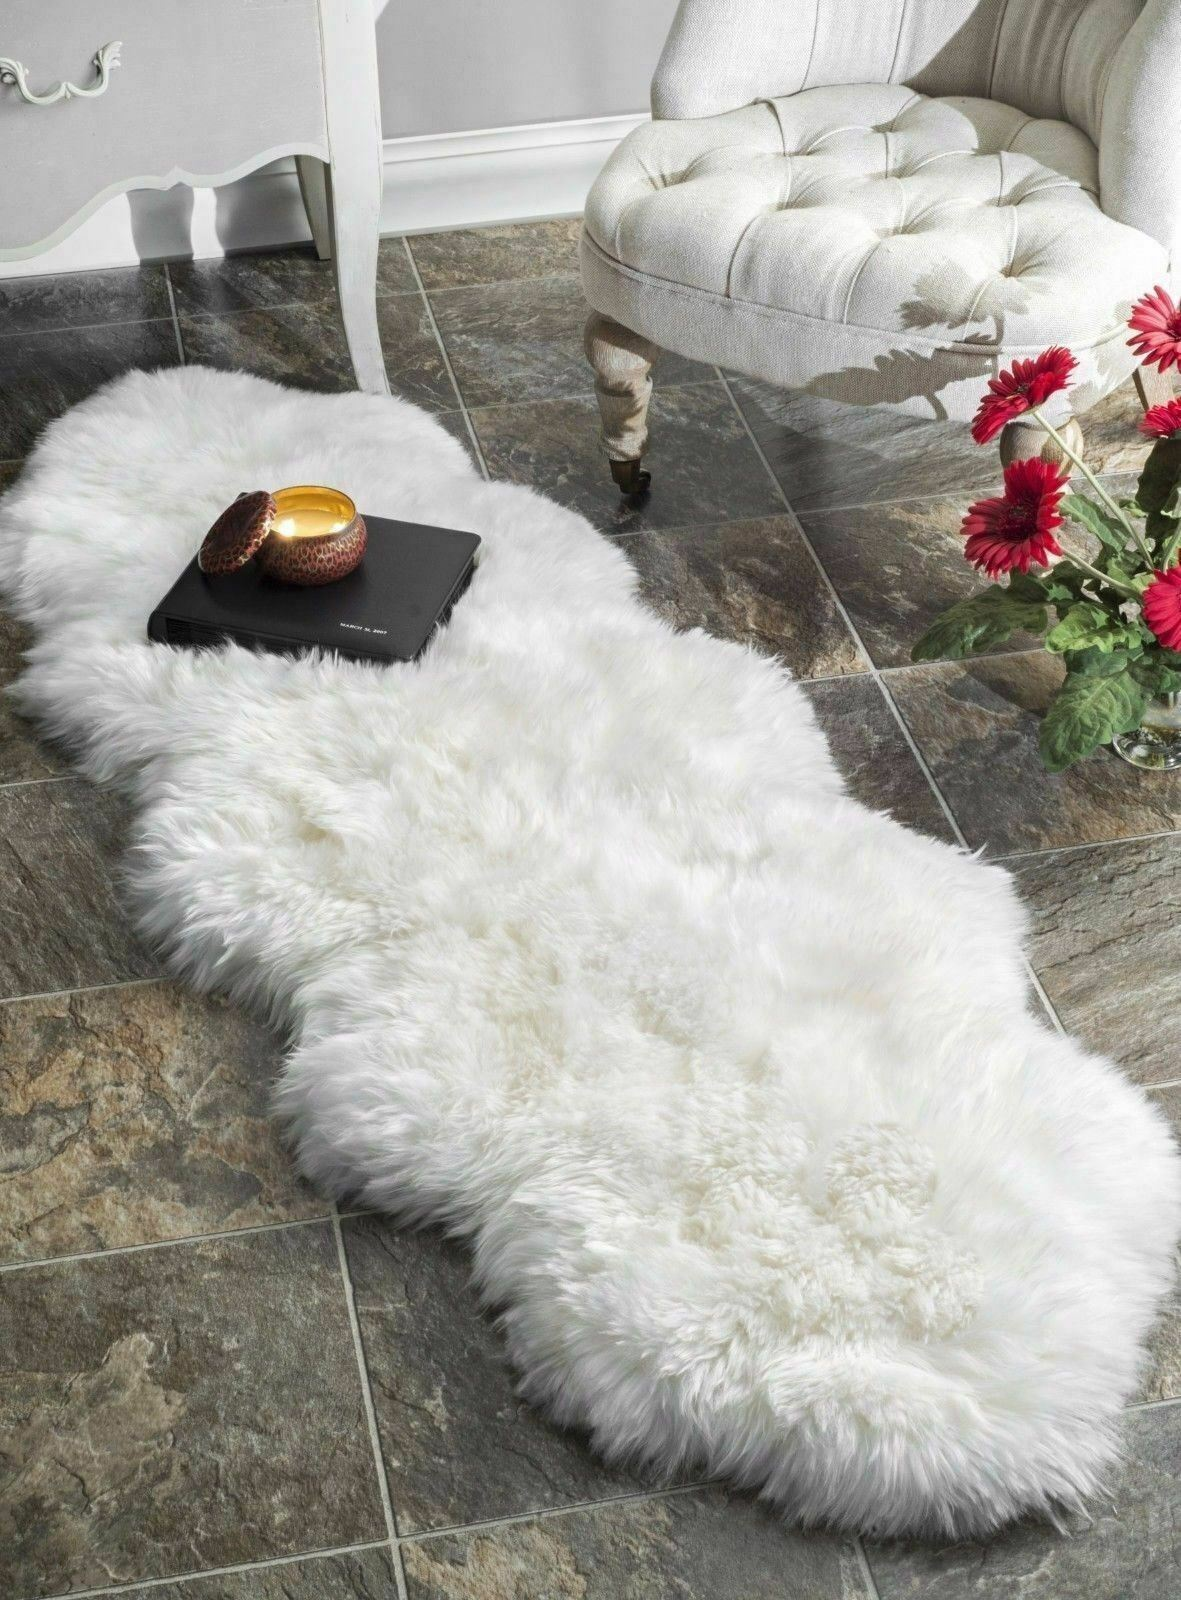 Picture of: Windward Natural Sheepskin Area Rug In Gray 721653 For Sale Online Ebay